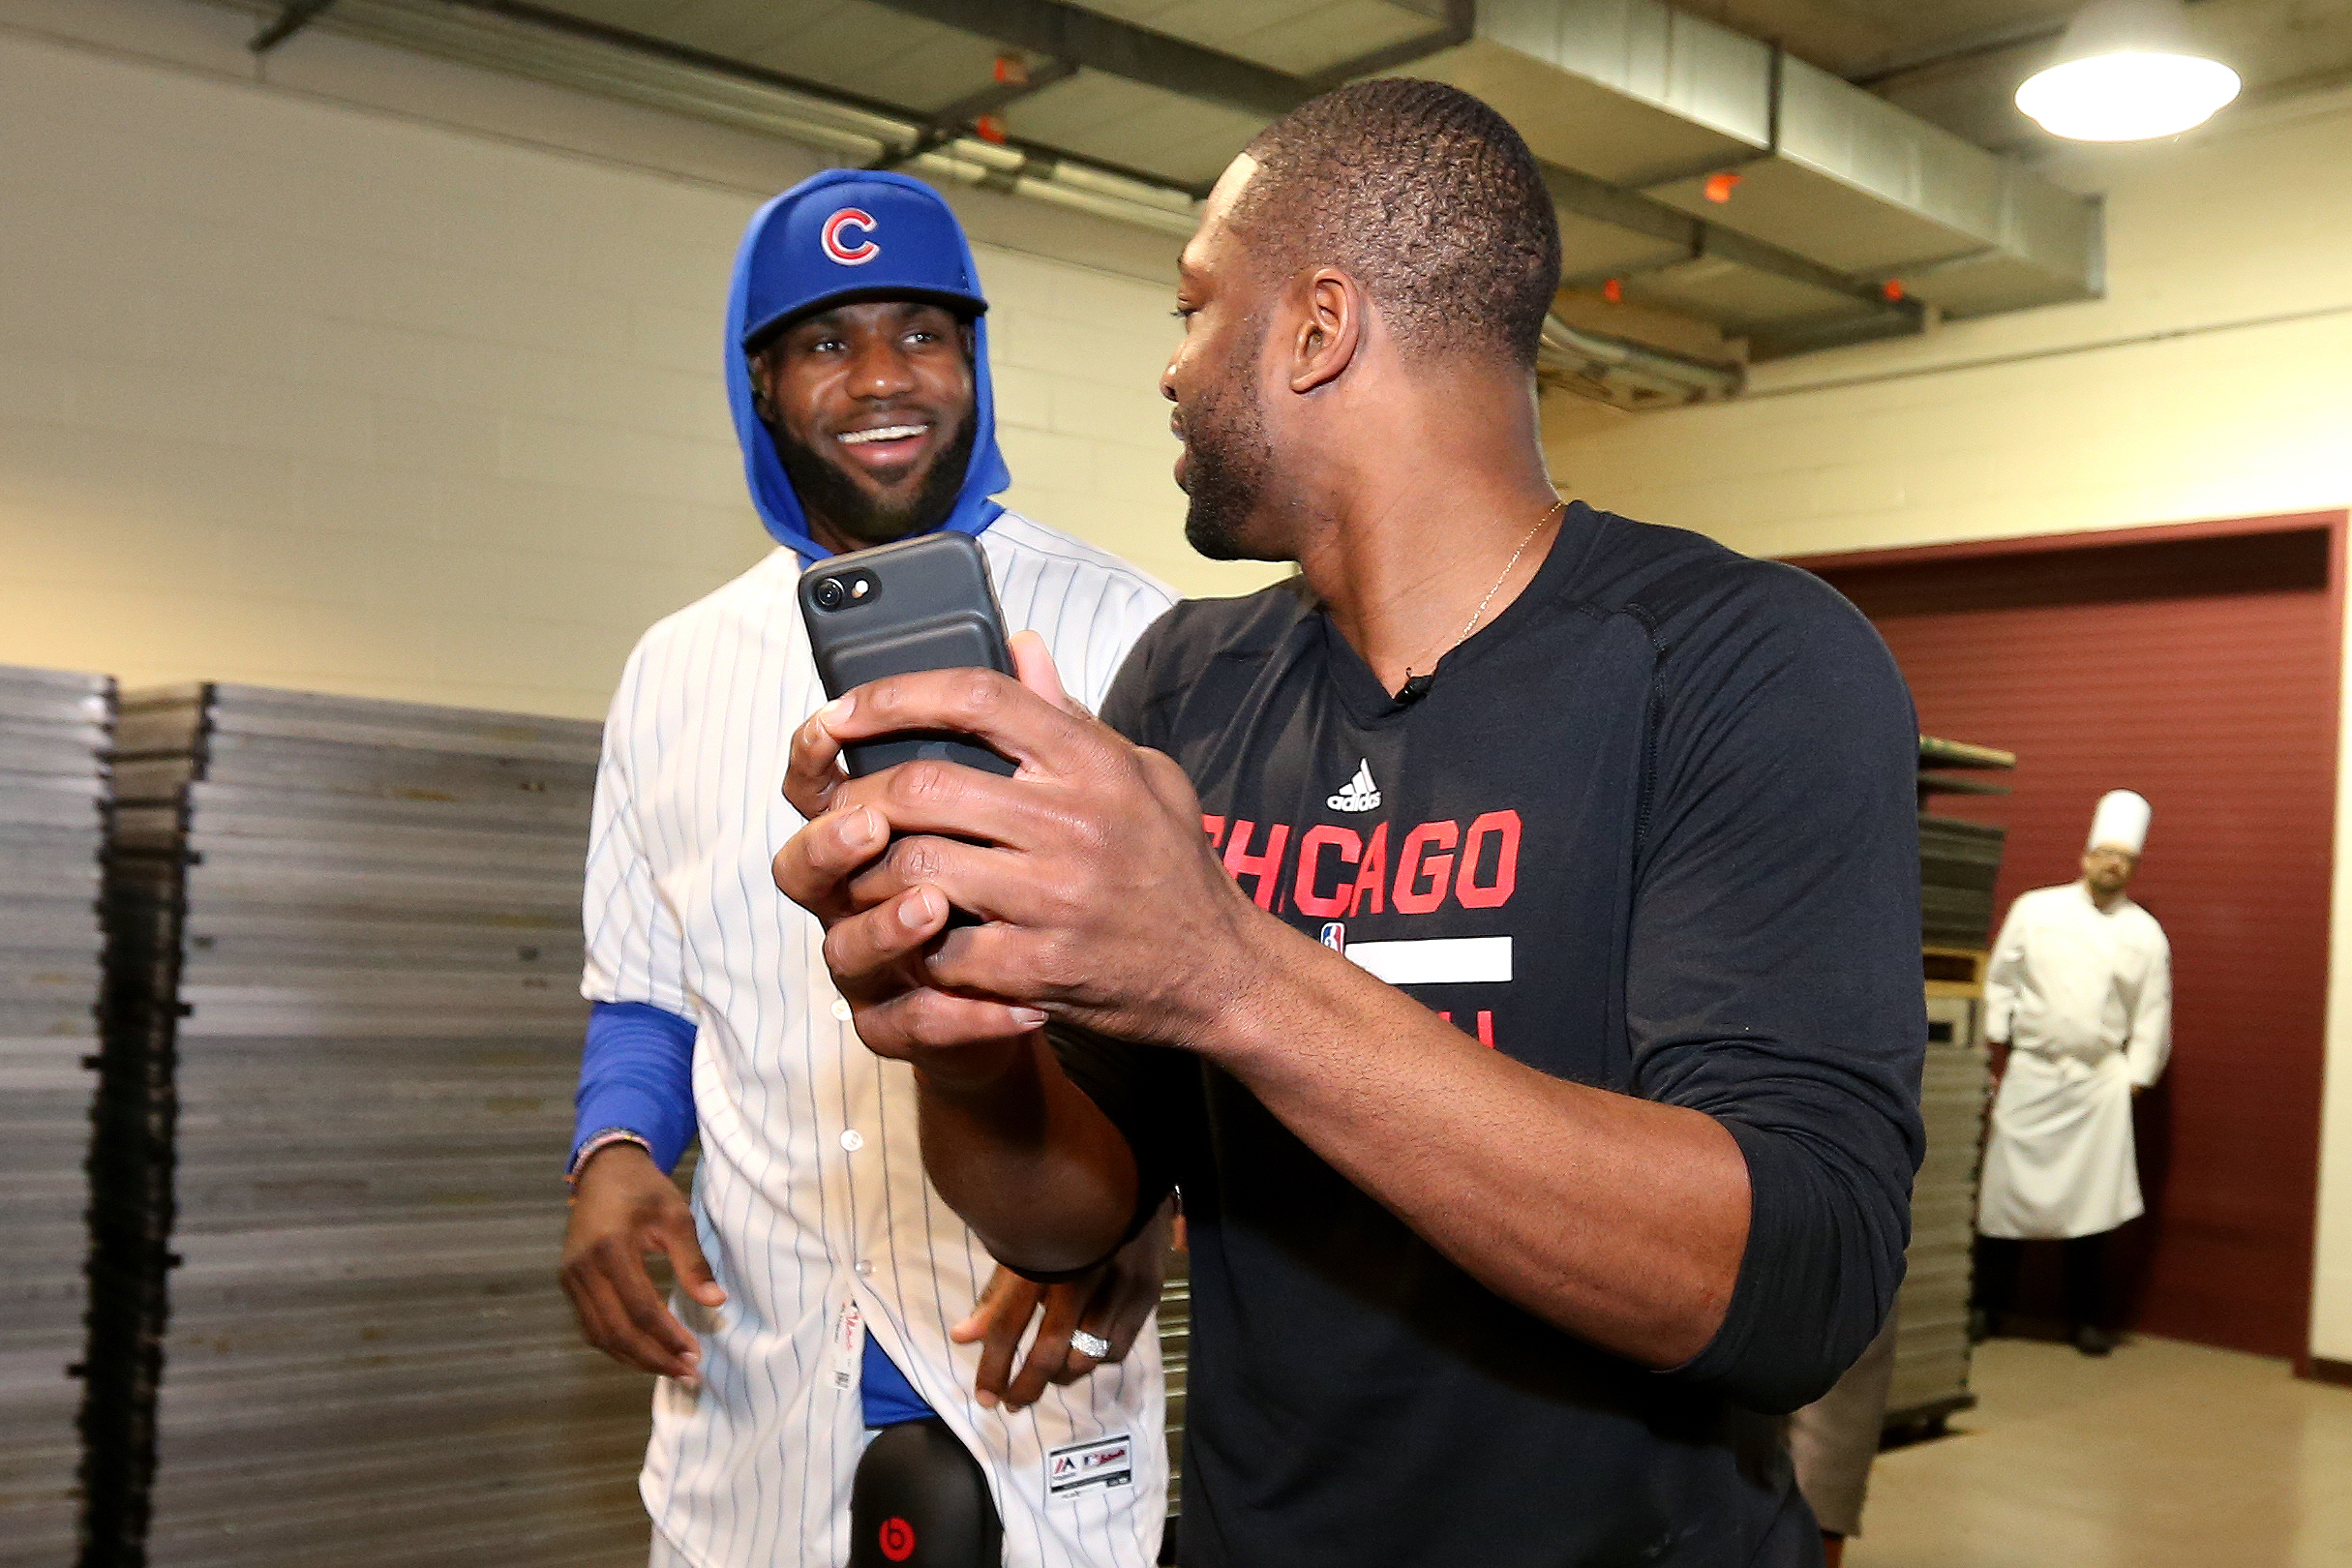 LeBron James #23 of the Cleveland Cavaliers arrives to the arena wearing a Chicago Cubs uniform and takes a picture with Dwyane Wade #3 of the Chicago Bulls before the game on December 2, 2016 at the United Center in Chicago, Illinois.